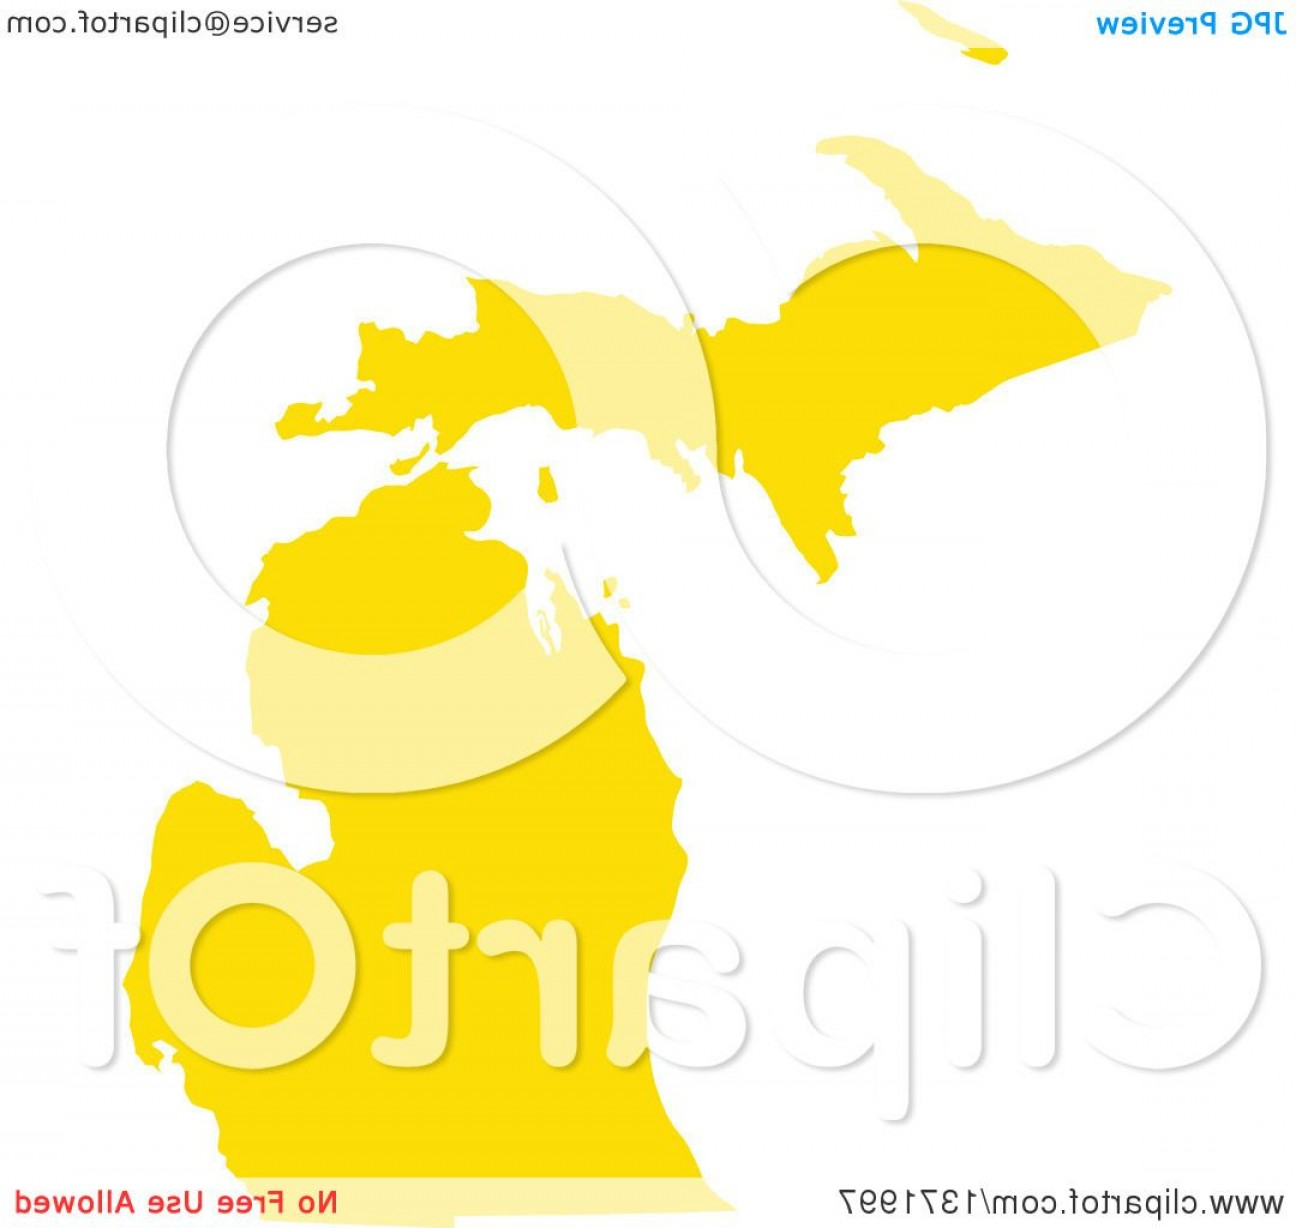 Michigan Vector Artwork: Yellow Silhouetted Map Shape Of The State Of Michigan United States